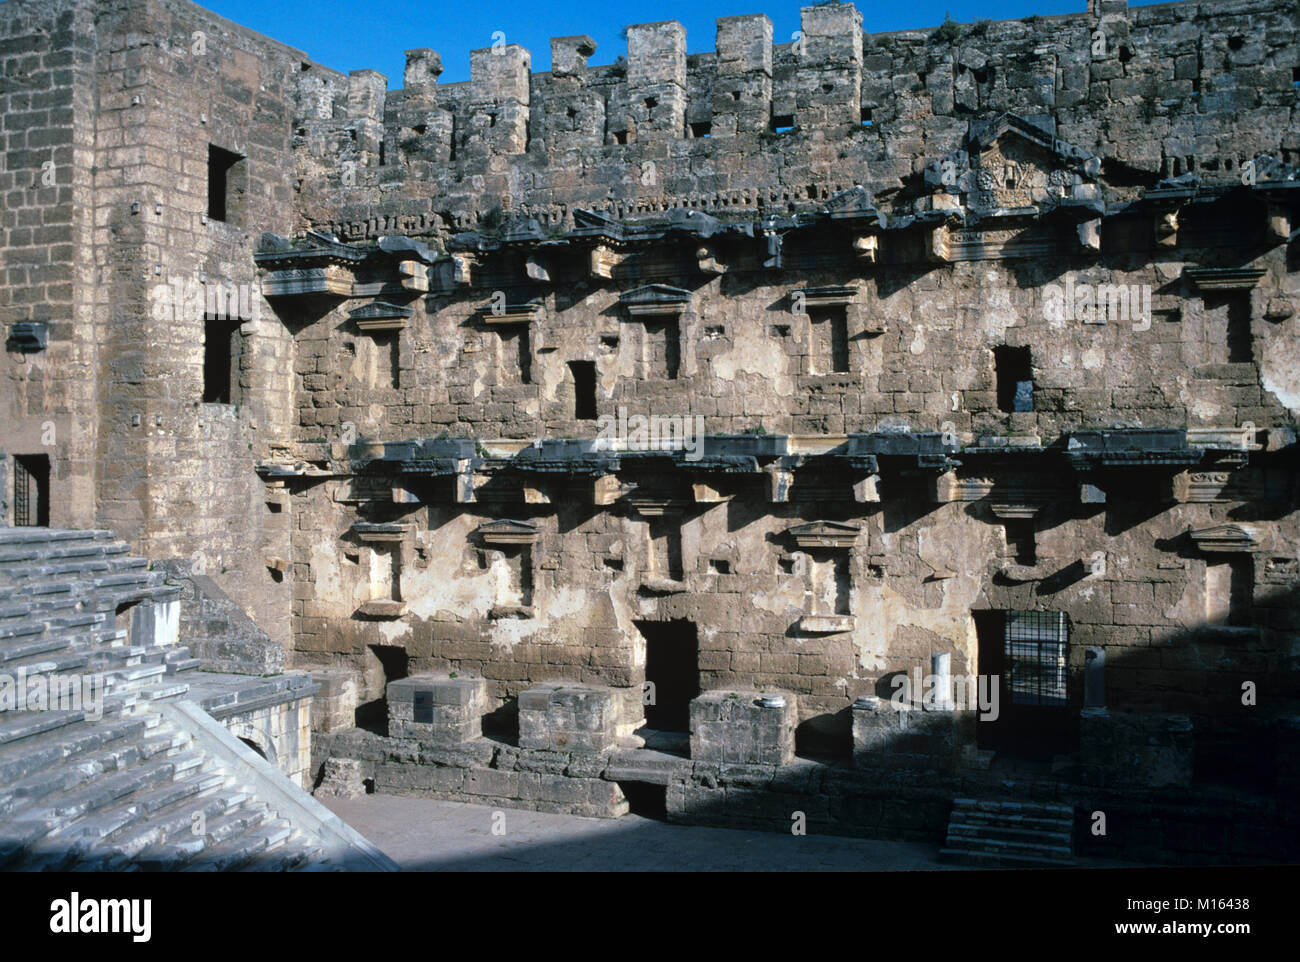 Stage Wall of the Roman Theatre (c2nd) at Aspendos, built by the Greek architect Zenon in 155 AD, Antalya, Turkey. - Stock Image